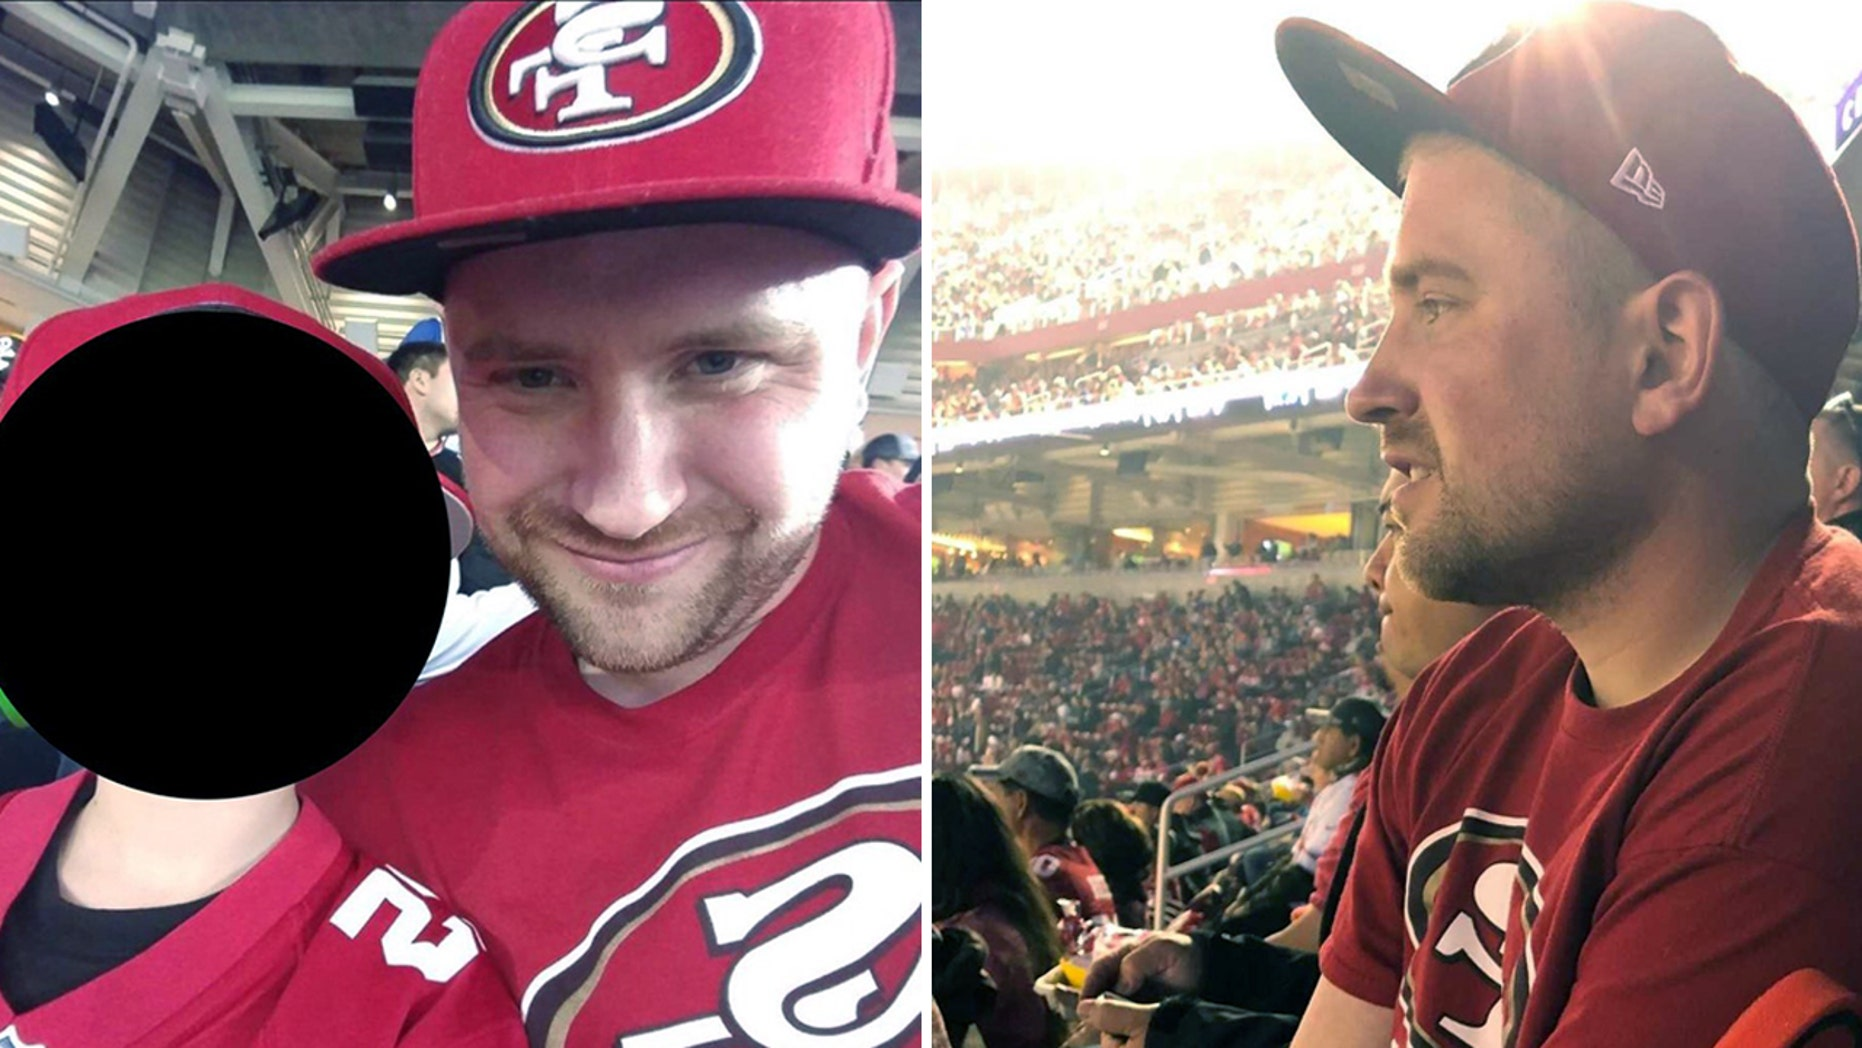 Ian Powers has not been seen since Monday night's game between the San Francisco 49ers and New York Giants.